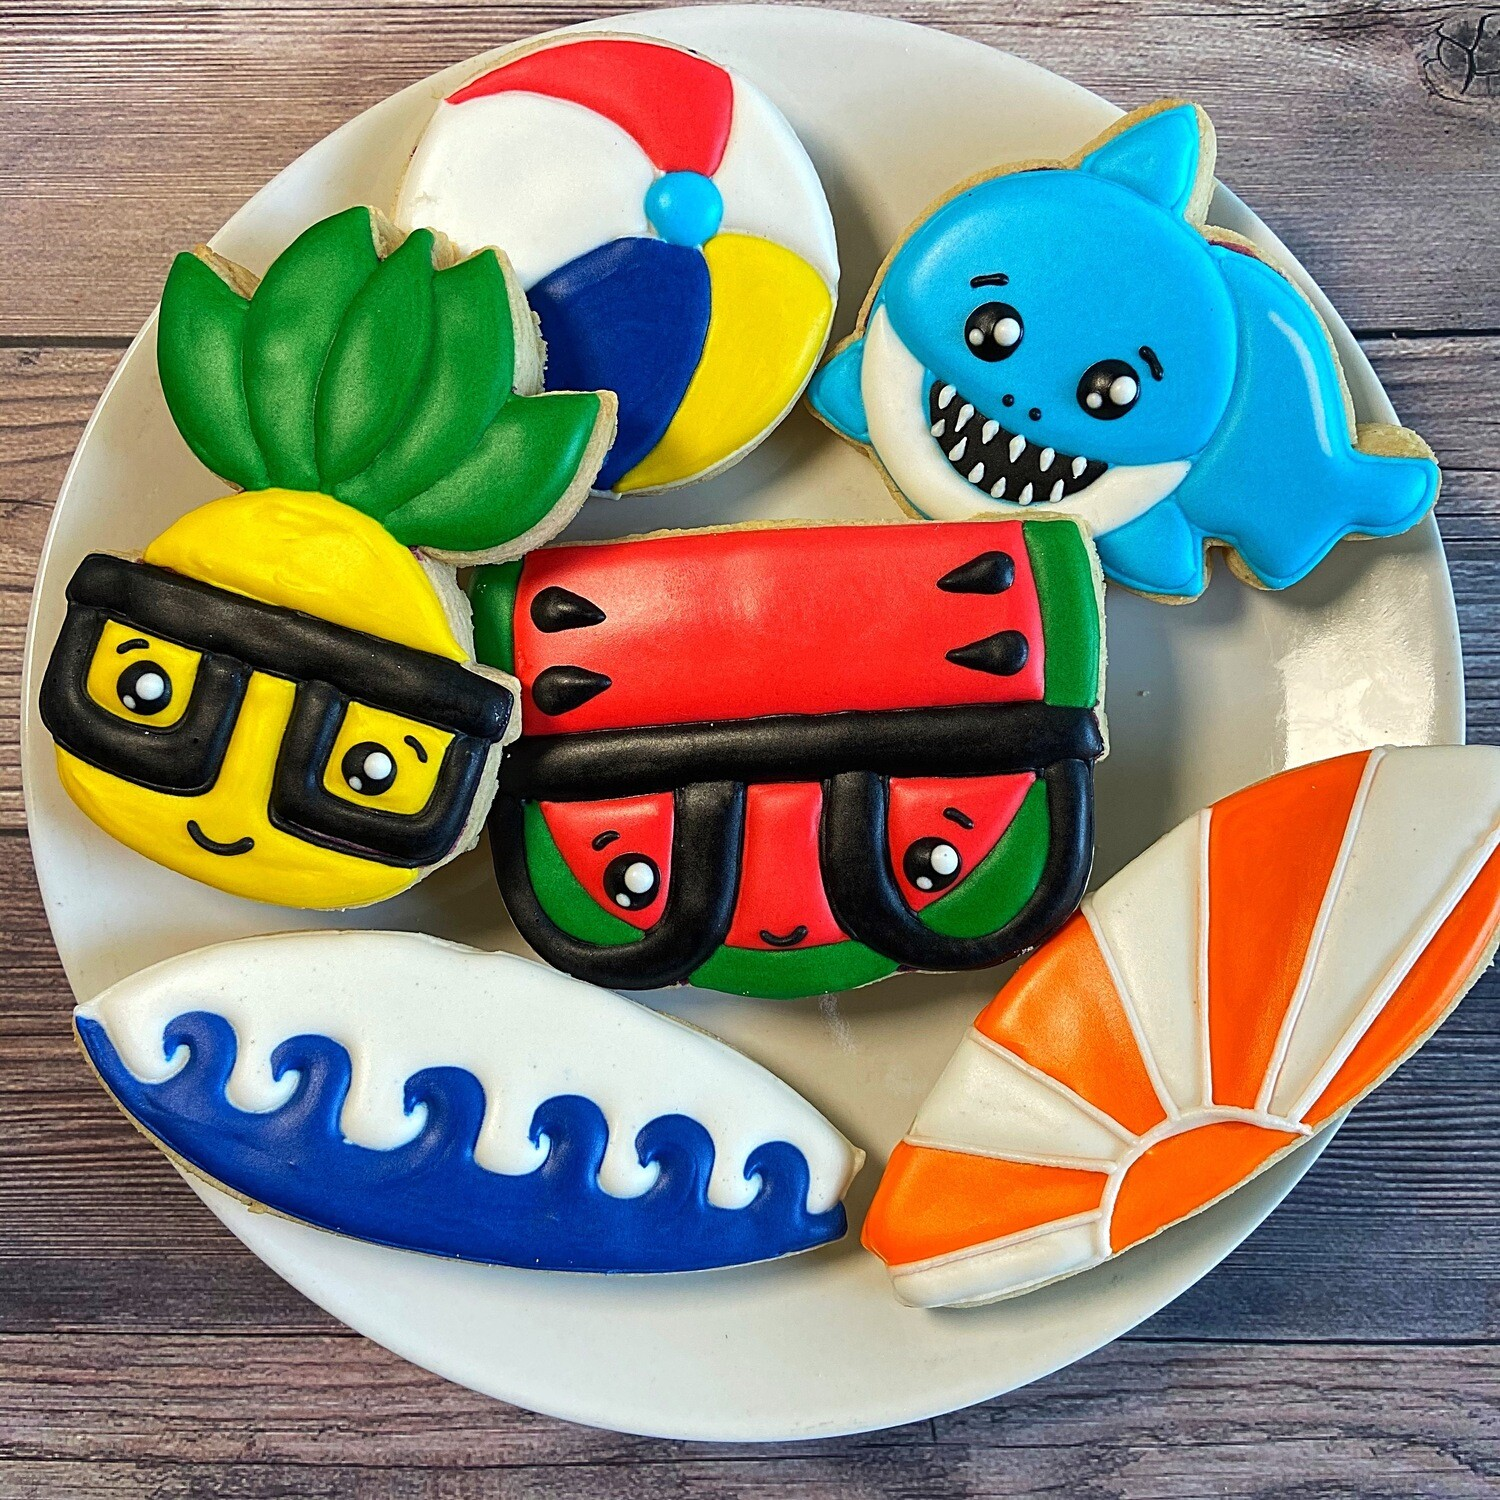 'BEACH BOY Decorating Workshop - SUNDAY, JULY 25th at 4 p.m. (THE COOKIE DECORATING STUDIO)